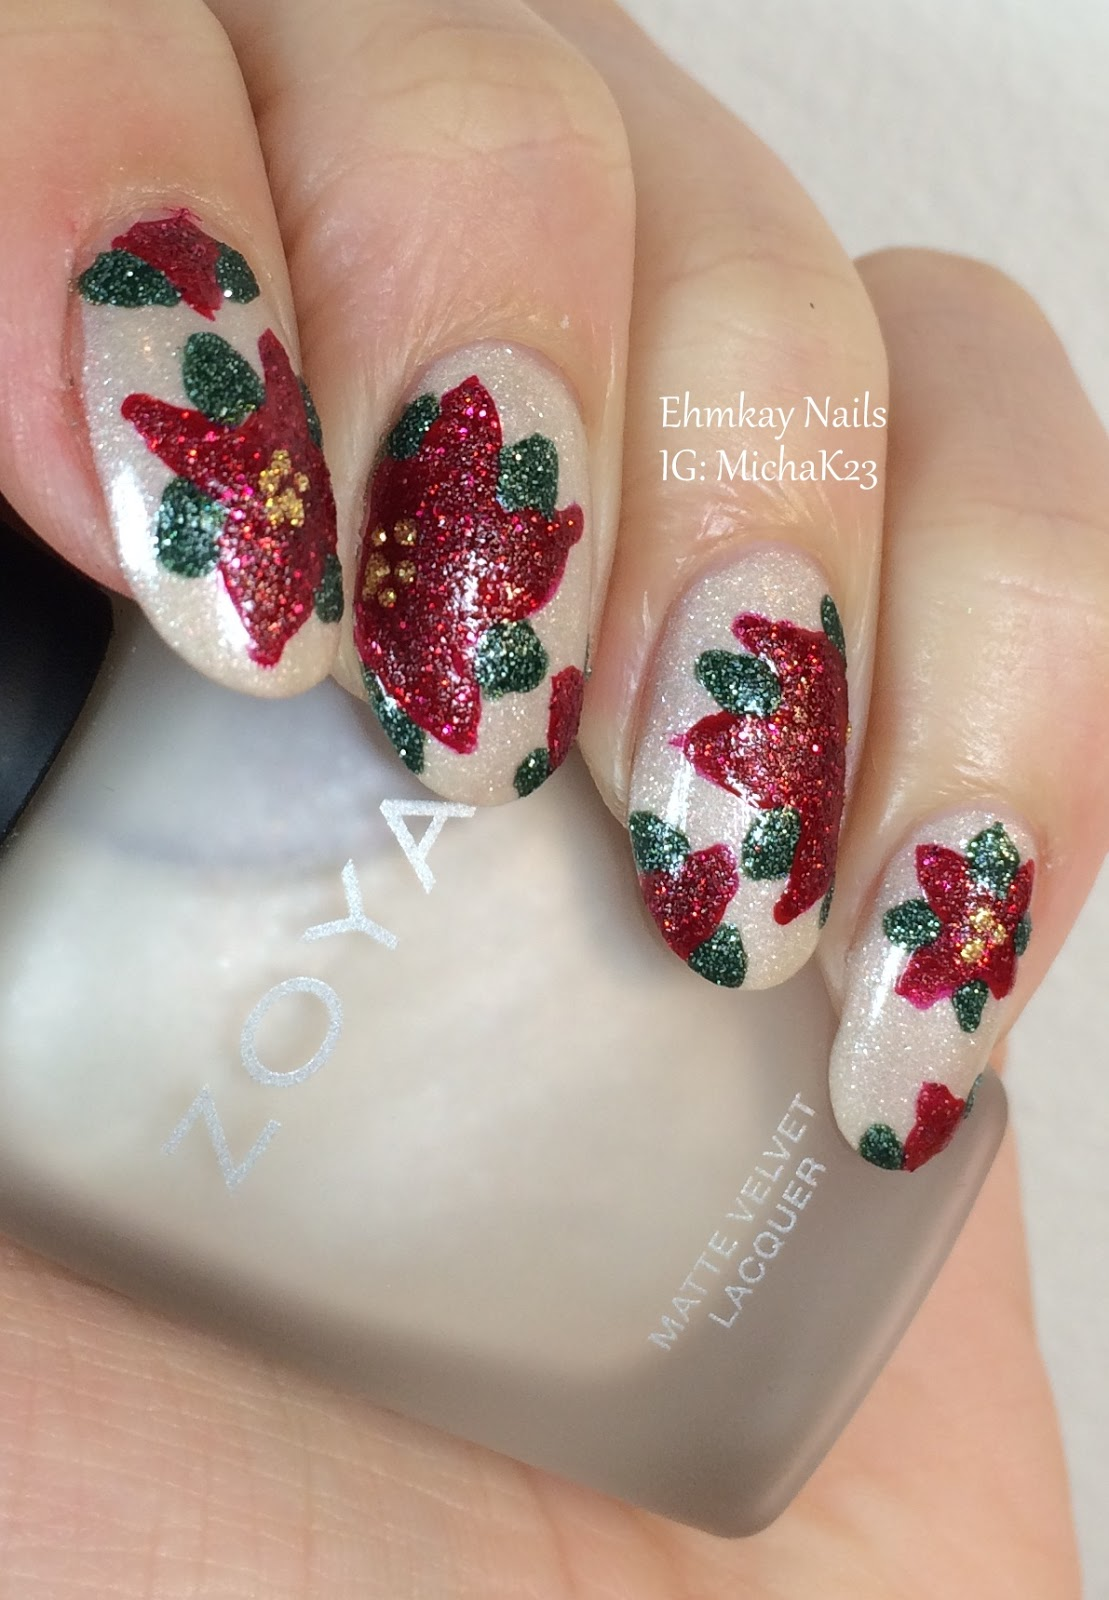 Christmas Nail Art French Manicure Red With White: Ehmkay Nails: Christmas Poinsettia Nail Art With Zoya Nail